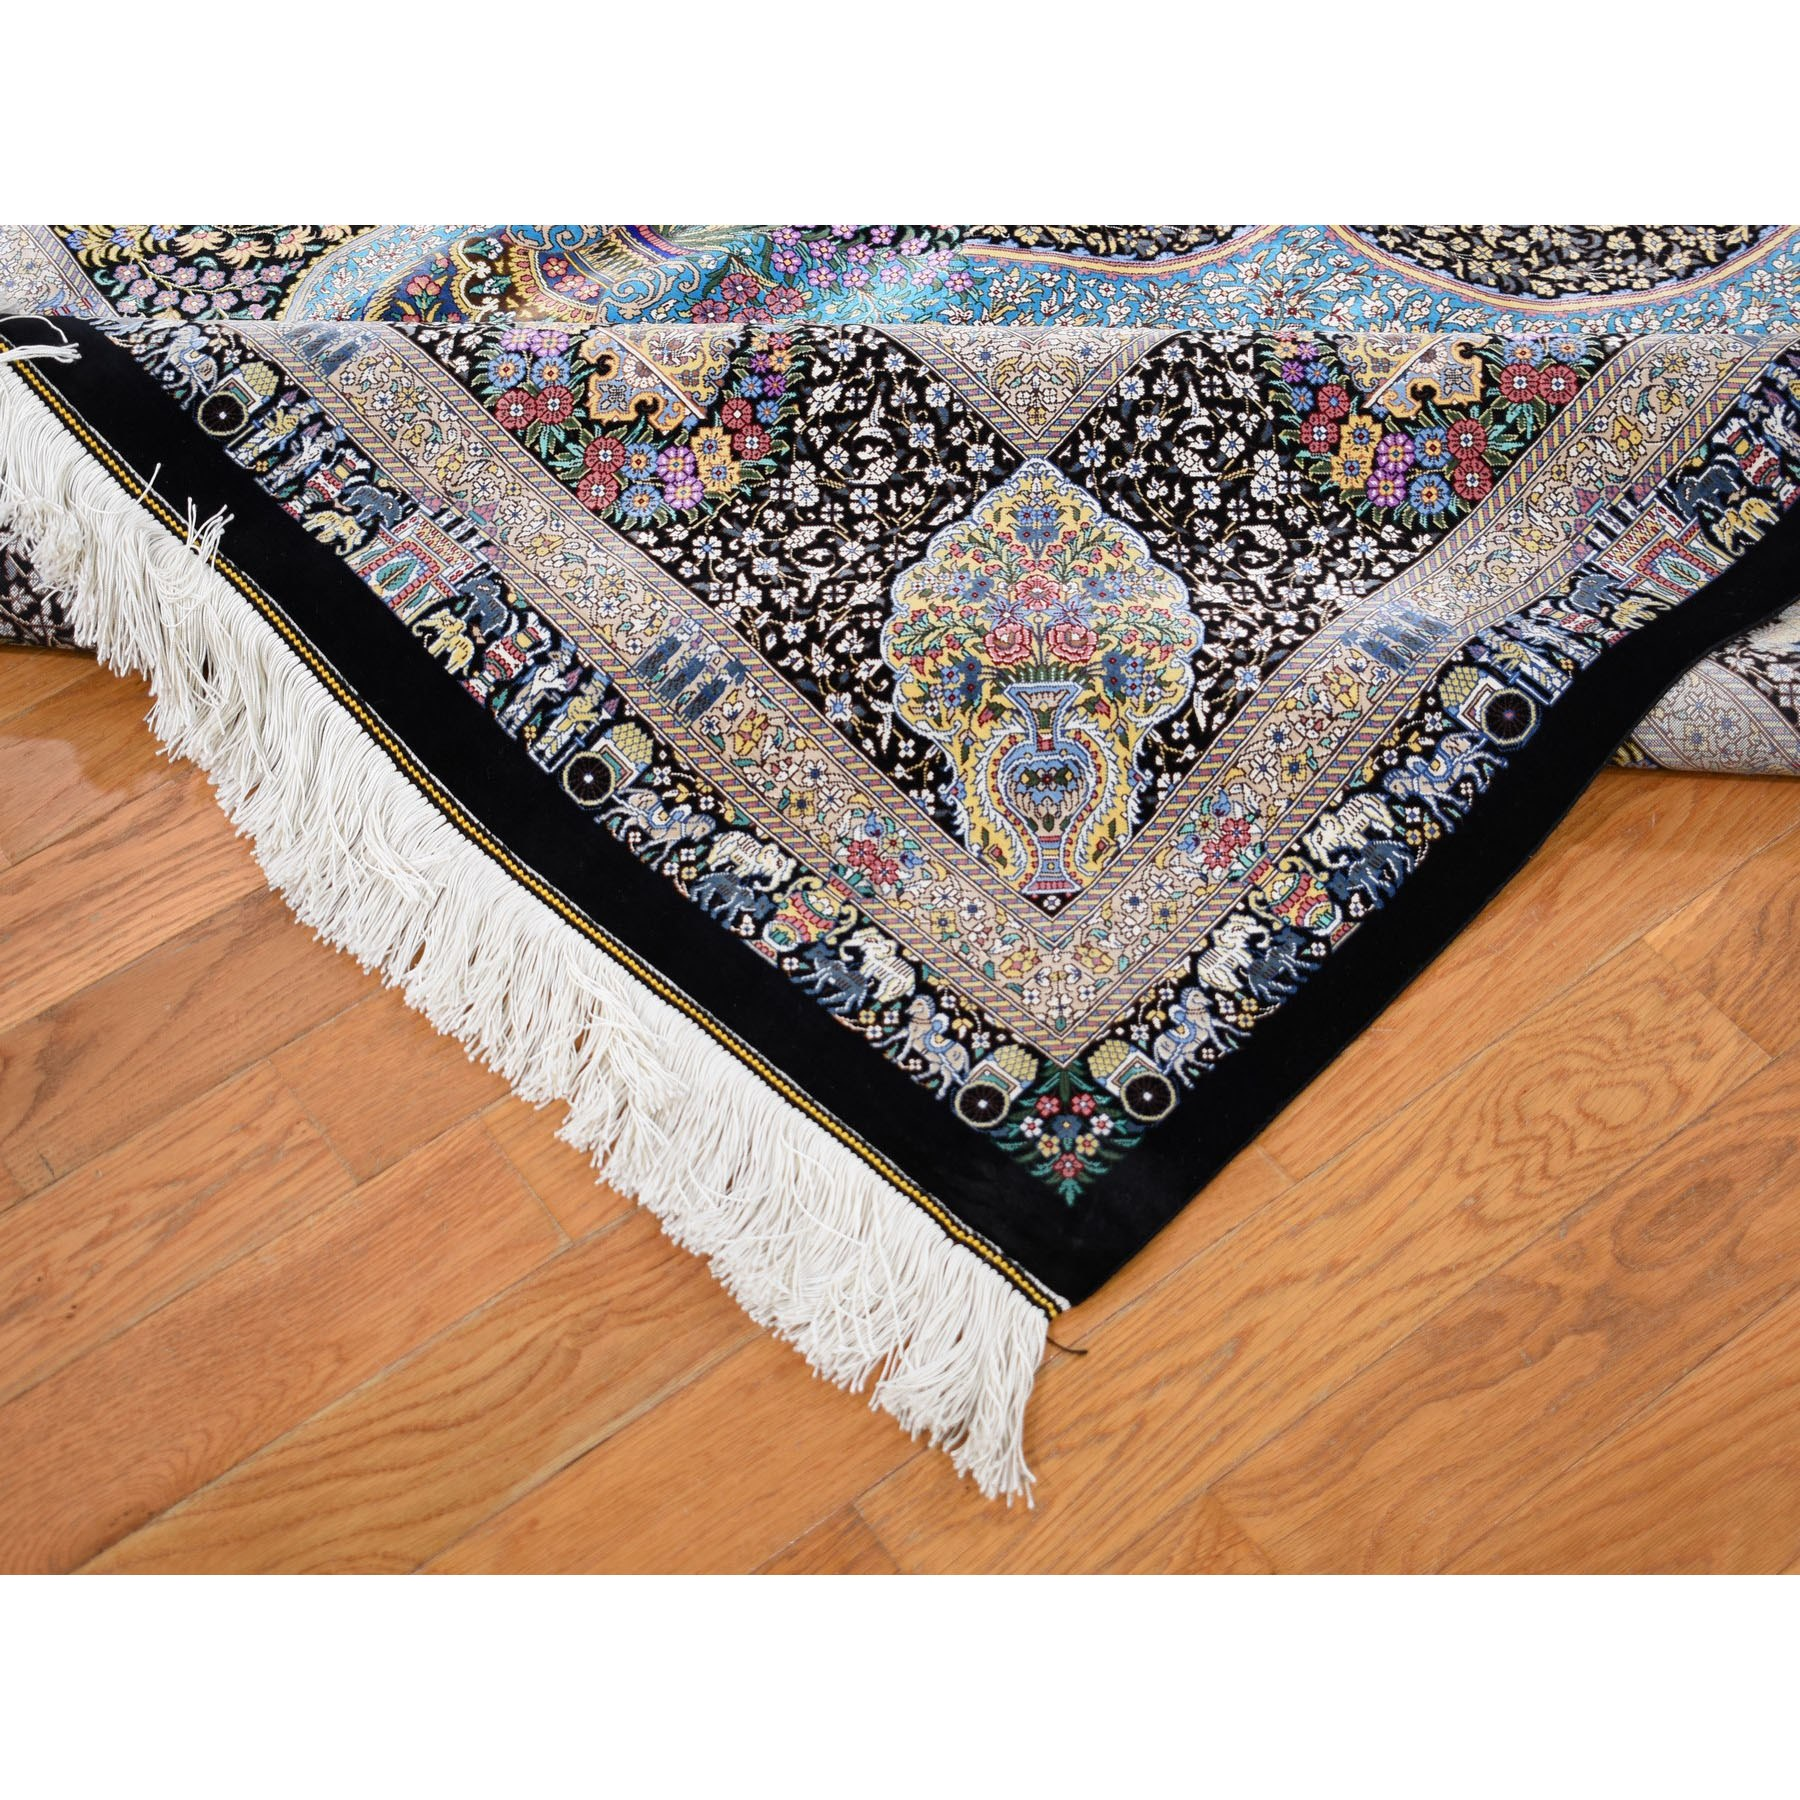 6-6 x10-2  Persian Silk Qum, Signed ,600 KPSI, Horse Carriages ,Kings, Hand Knotted Oriental Rug